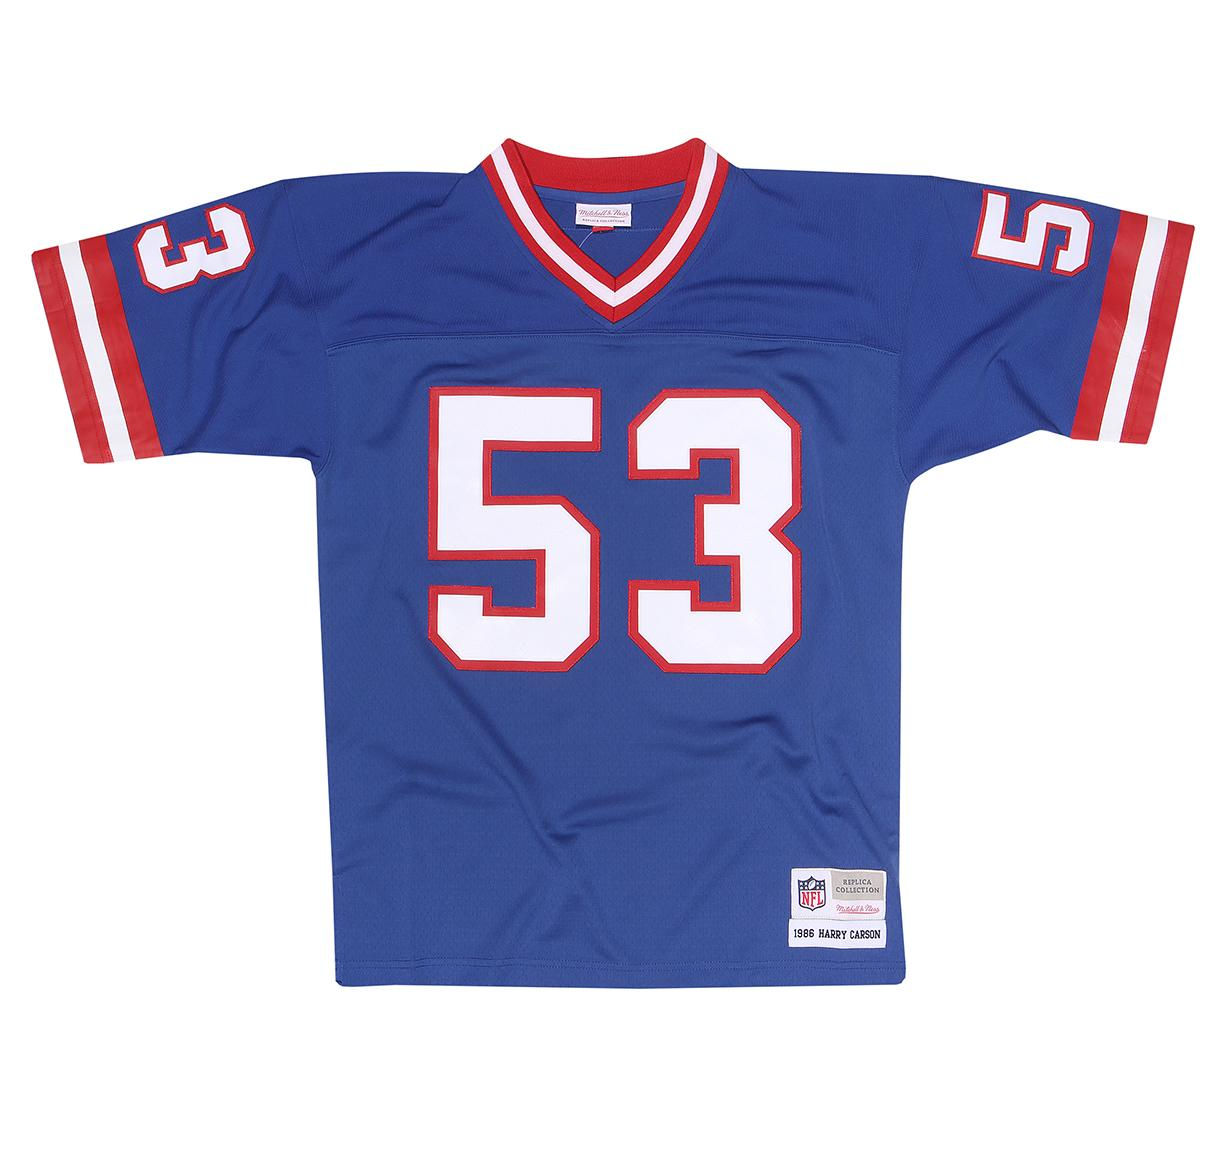 31ae46227 Mitchell & Ness | Harry Carson Legacy Jersey 1986 New York Giants